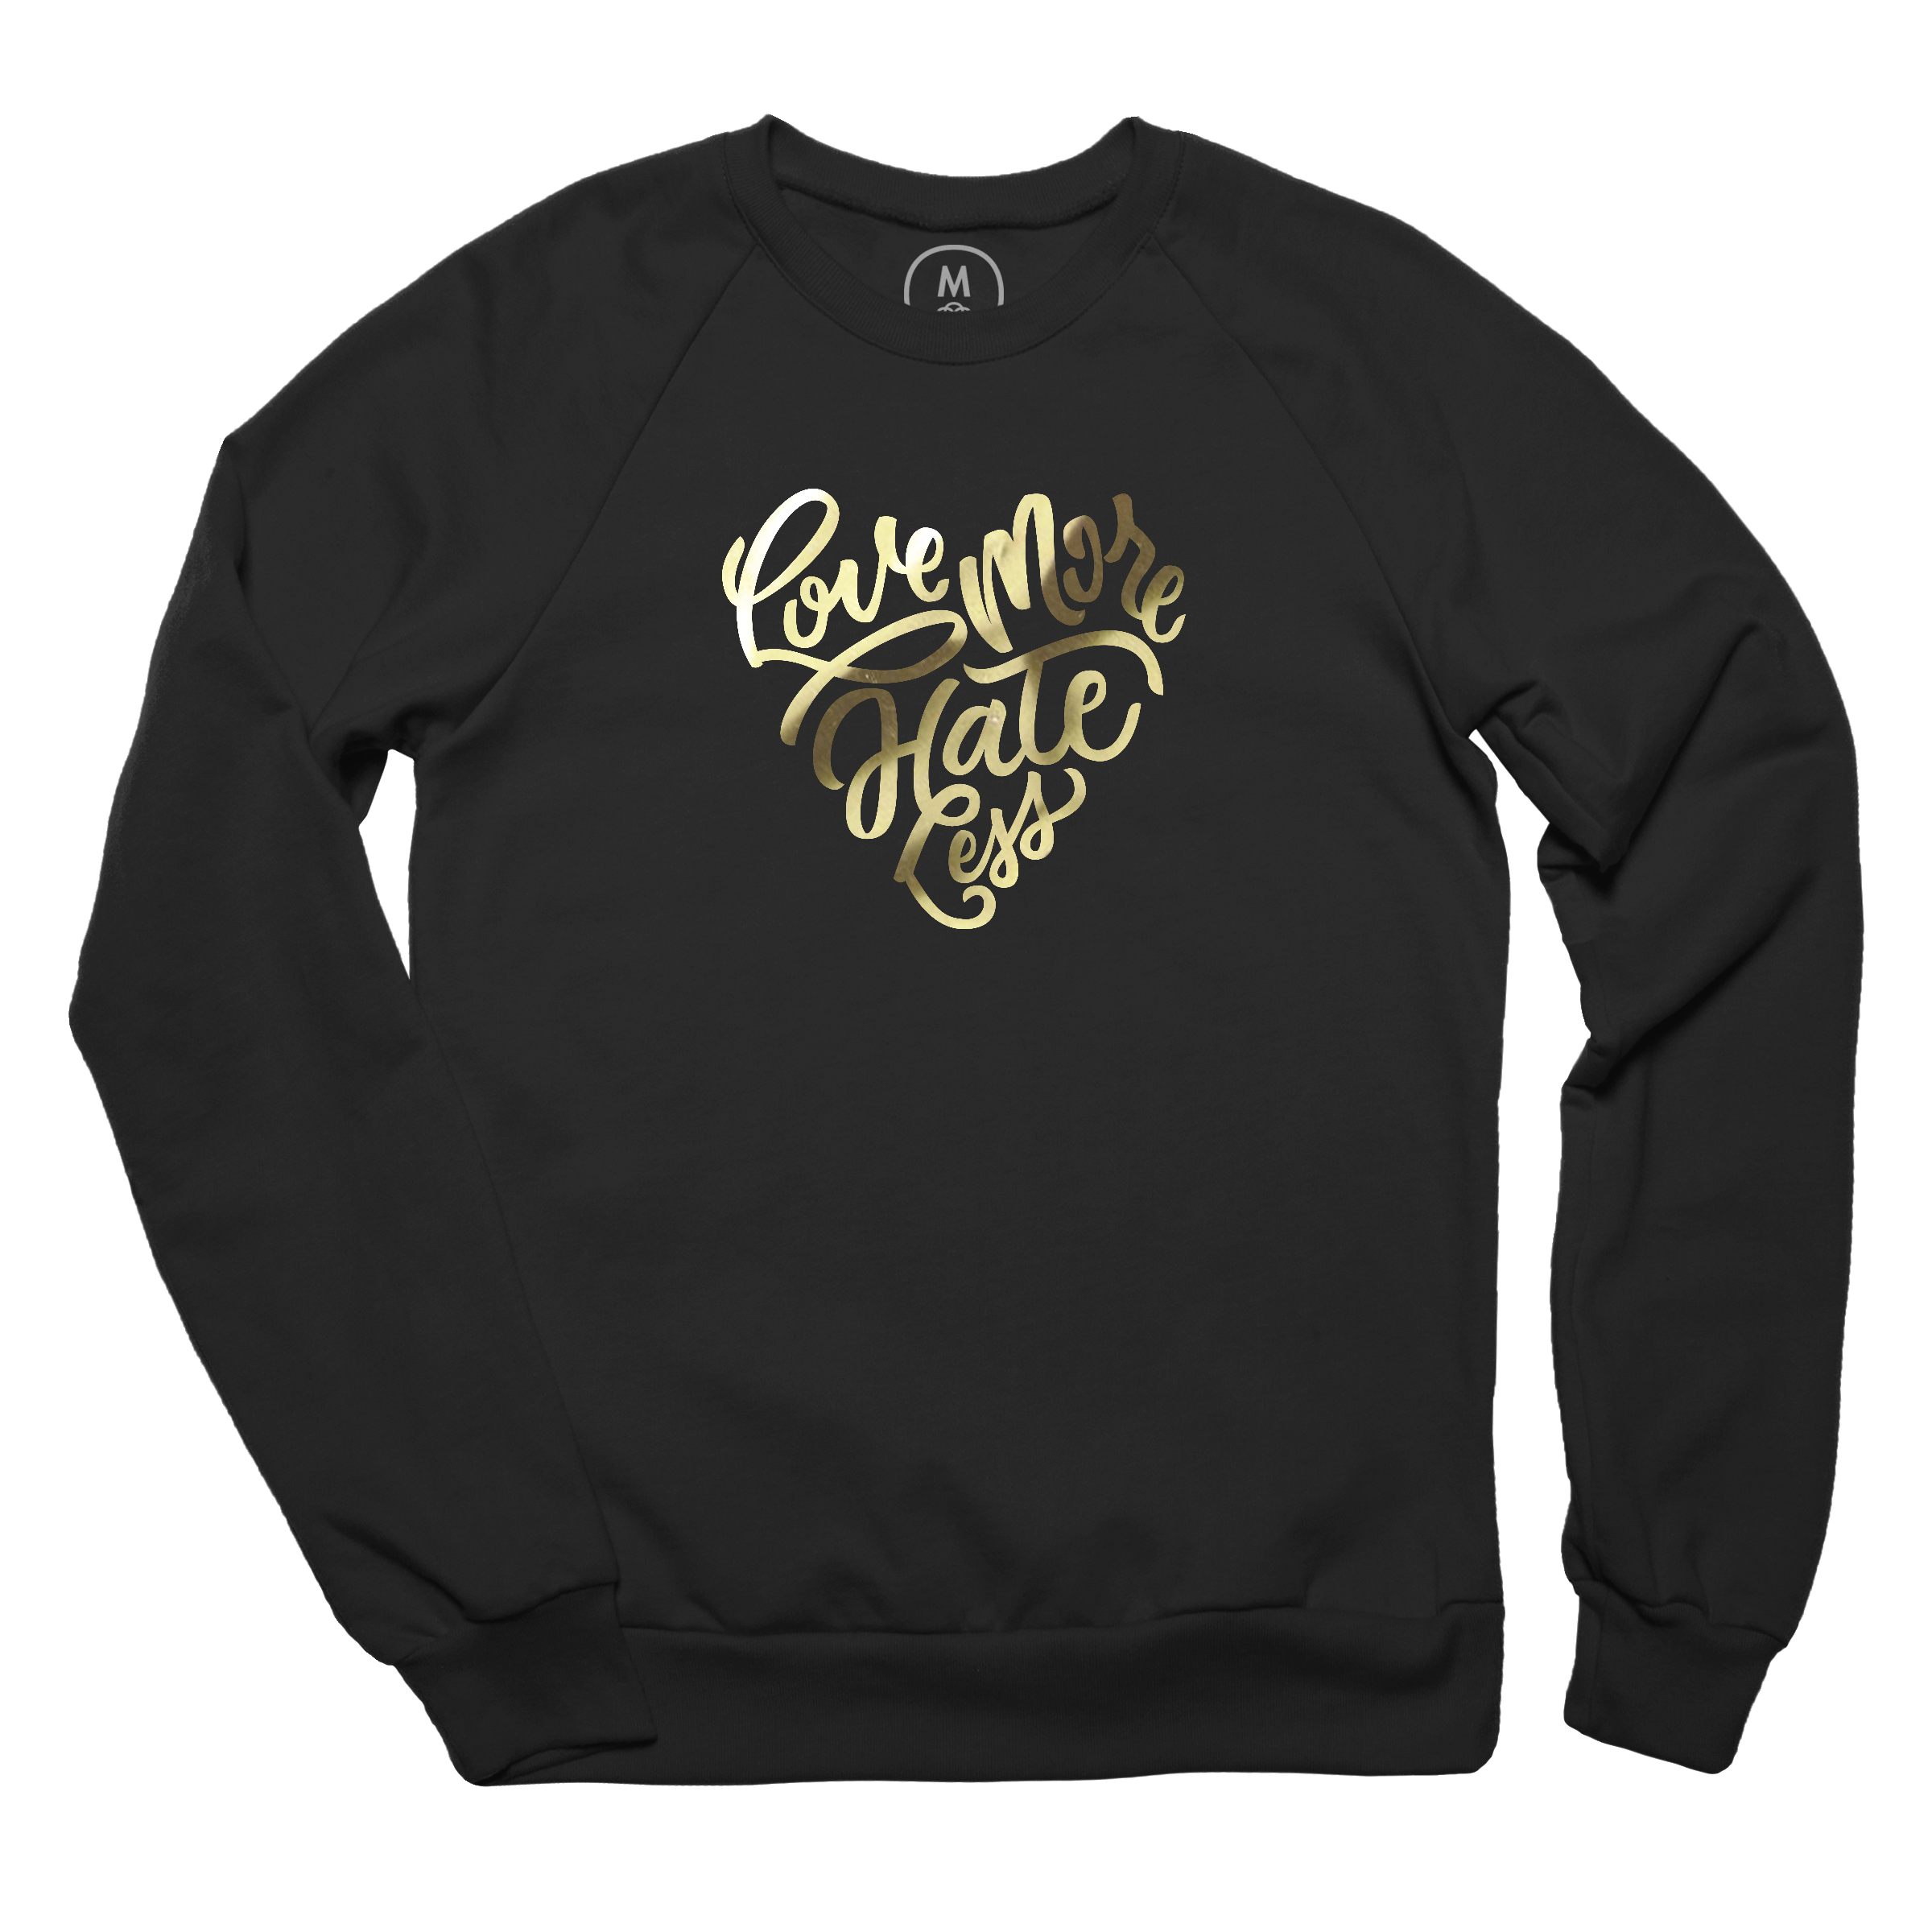 Love More Hate Less Pullover Crewneck